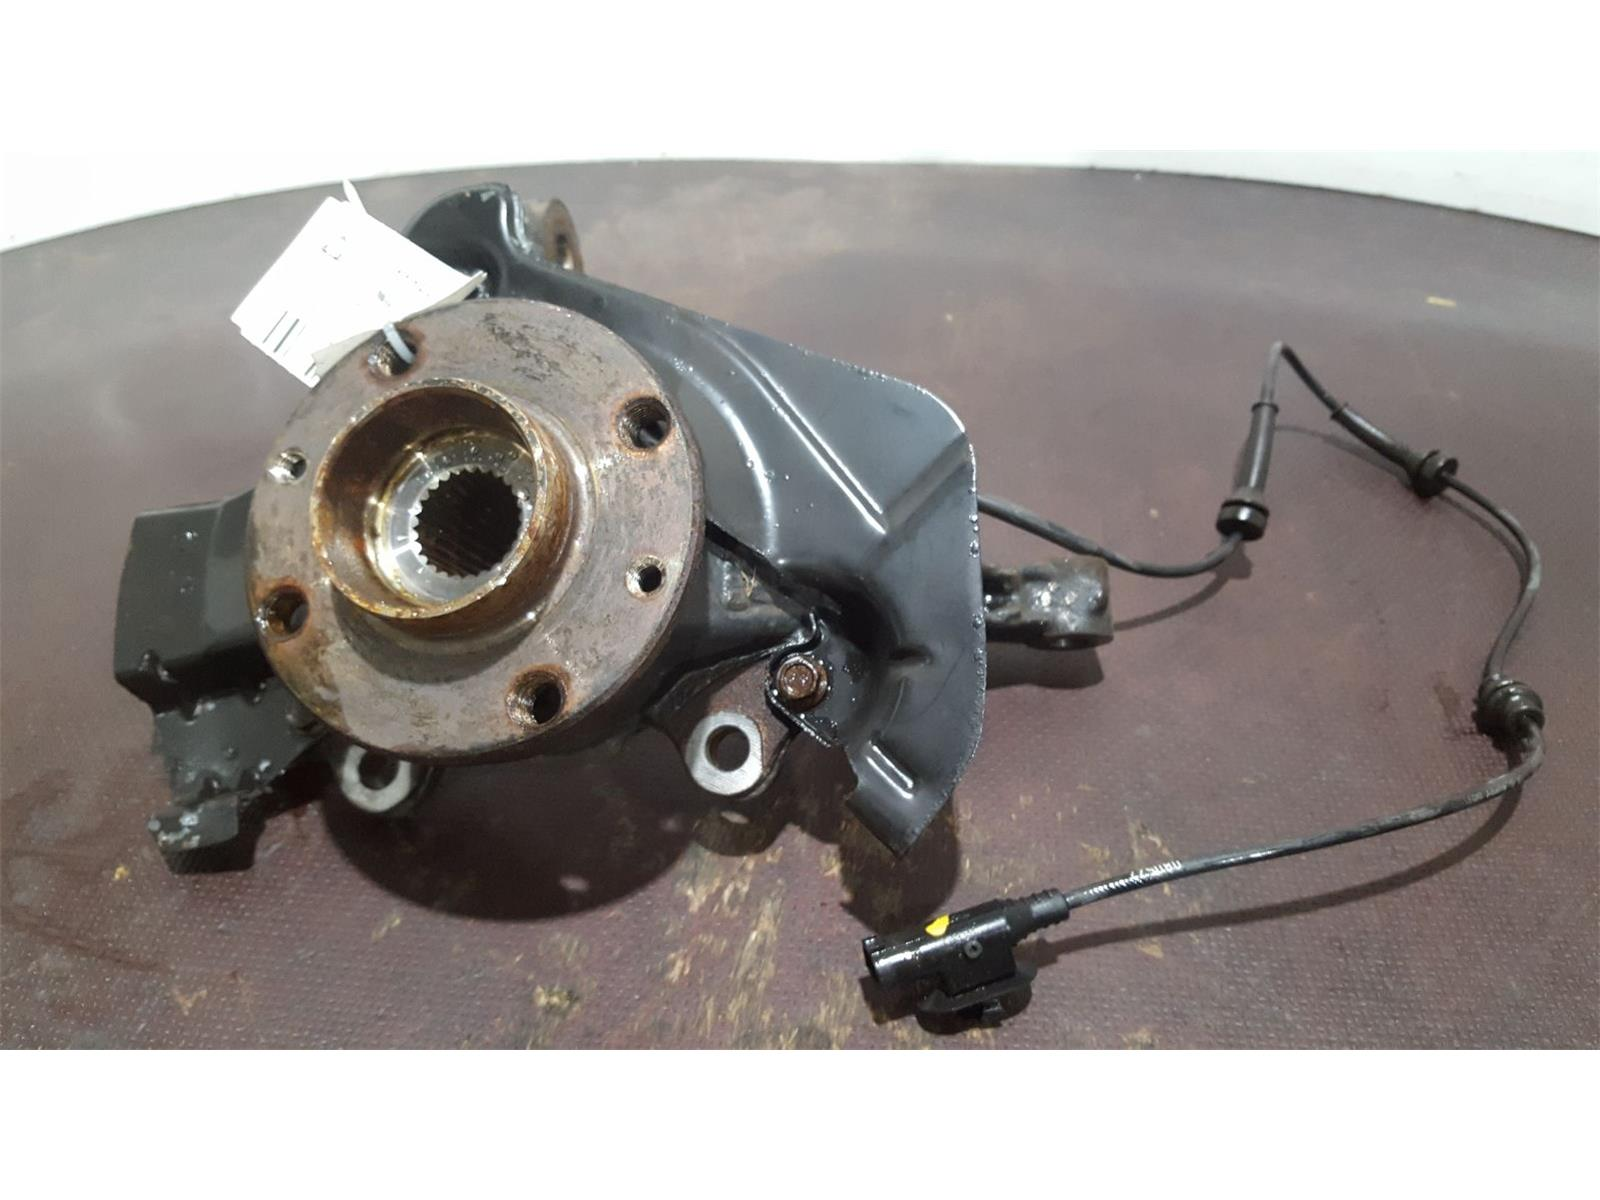 Peugeot Bipper 2008 On 1.3 O/S Right Front Hub Bearing Carrier 2015